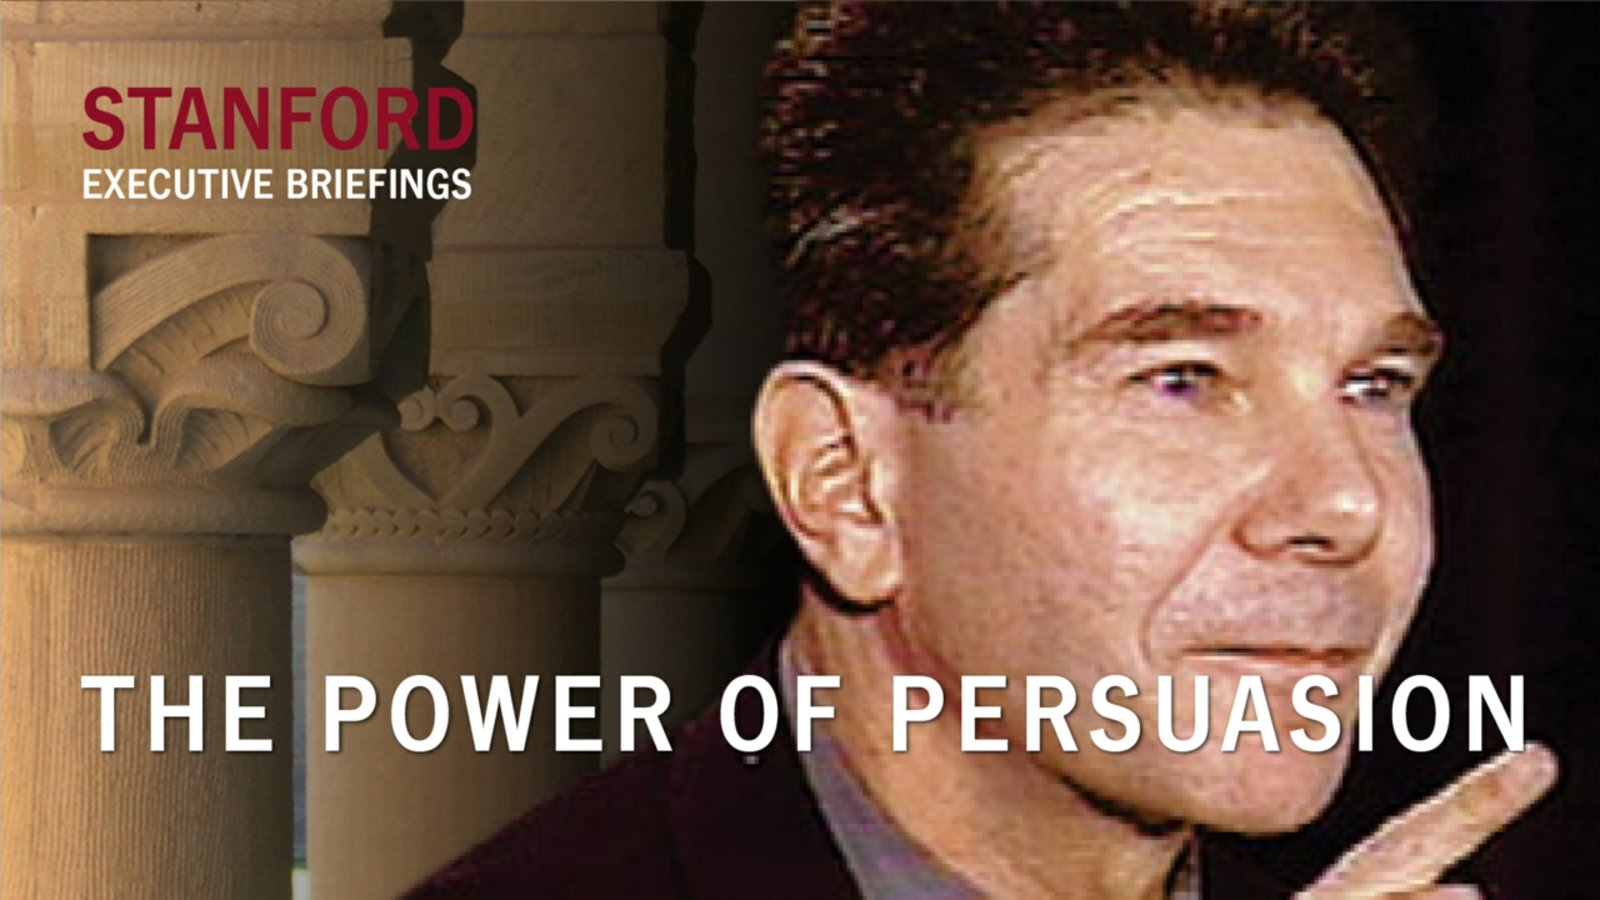 The Power of Persuasion by Robert Cialdini